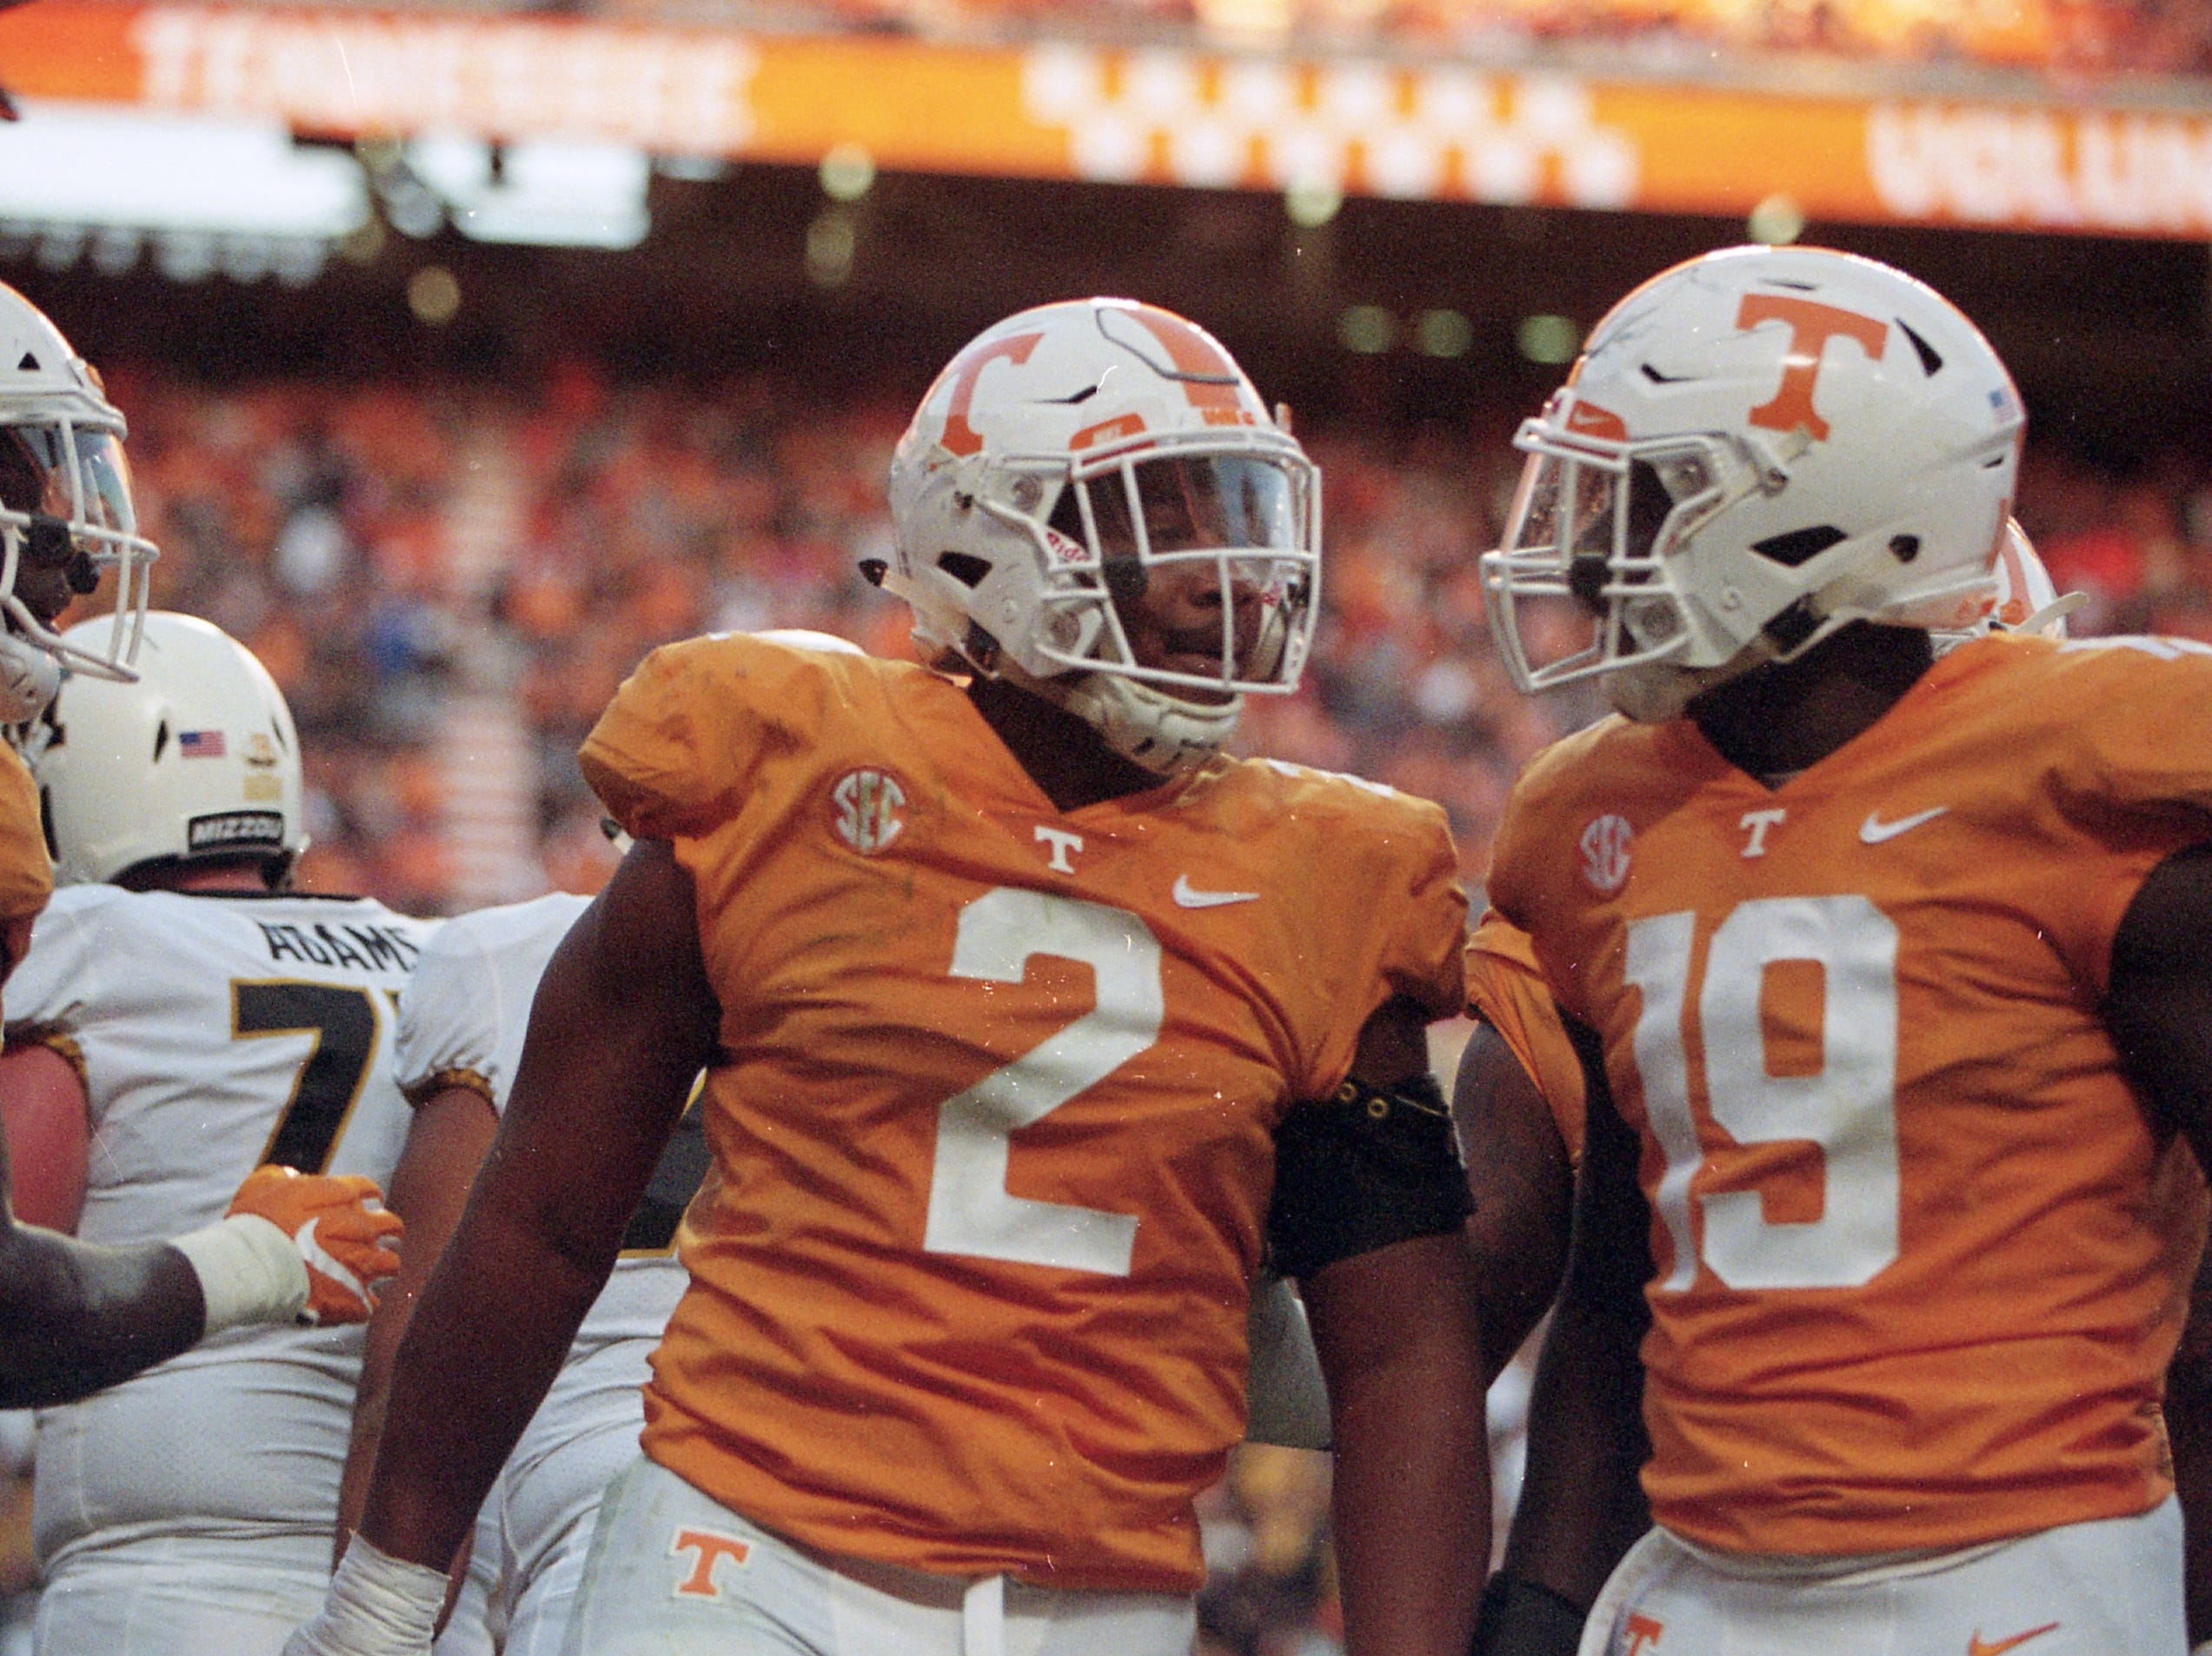 Tennessee defensive lineman Shy Tuttle (2) is congratulated by Tennessee linebacker Darrell Taylor (19) on a touchdown during a game between Tennessee and Missouri at Neyland Stadium in Knoxville, Tennessee on Saturday, November 17, 2018.